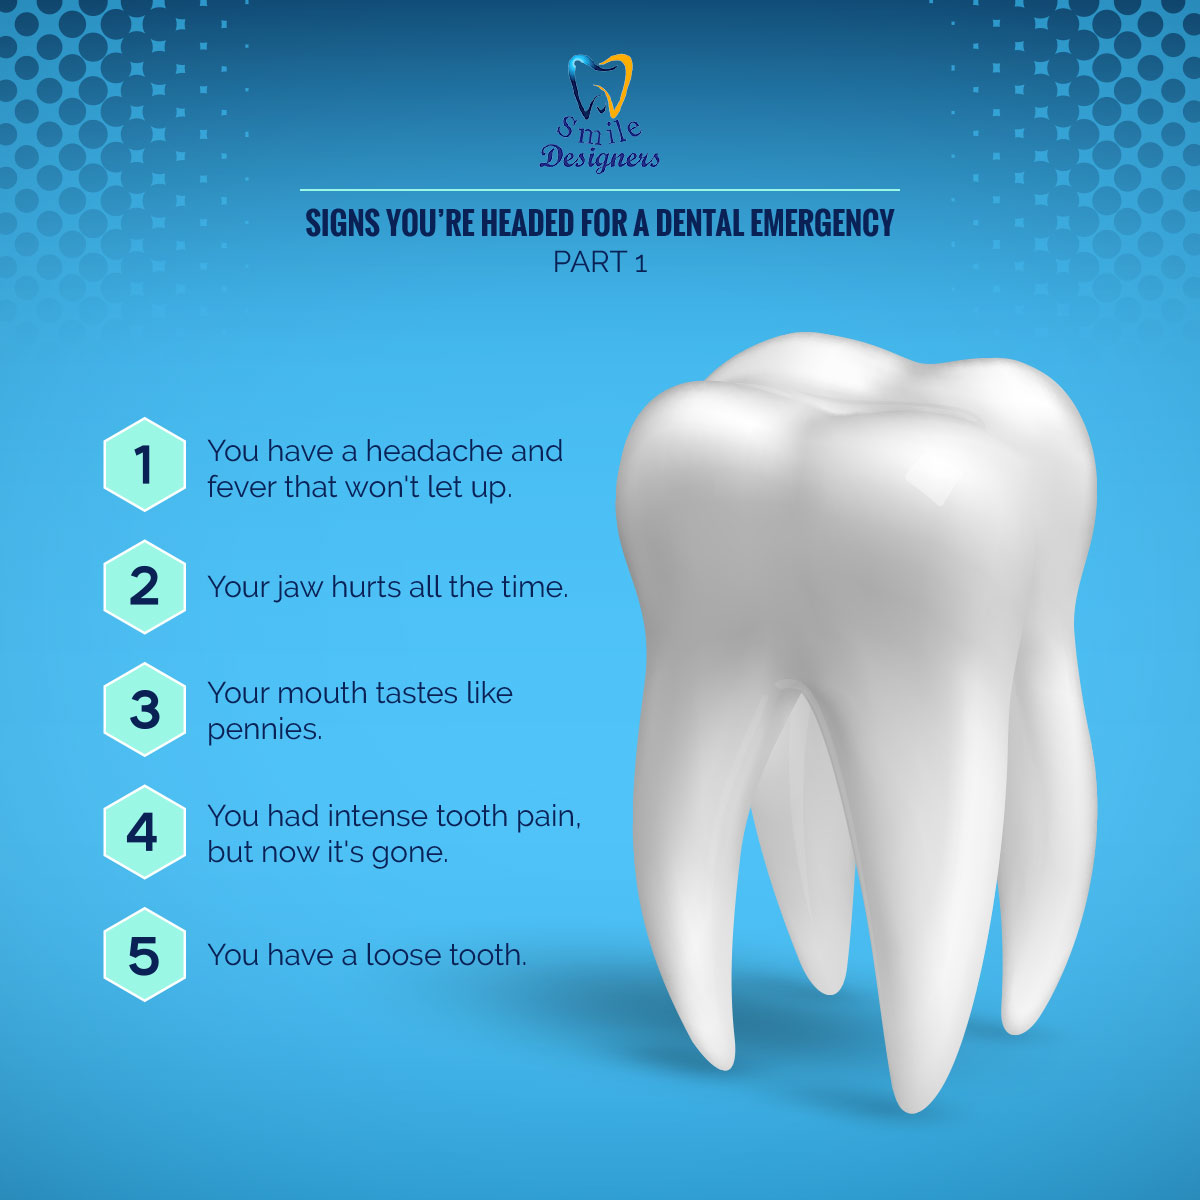 Signs-Youre-Headed-for-a-Dental-Emergency-Part-1-Infographic